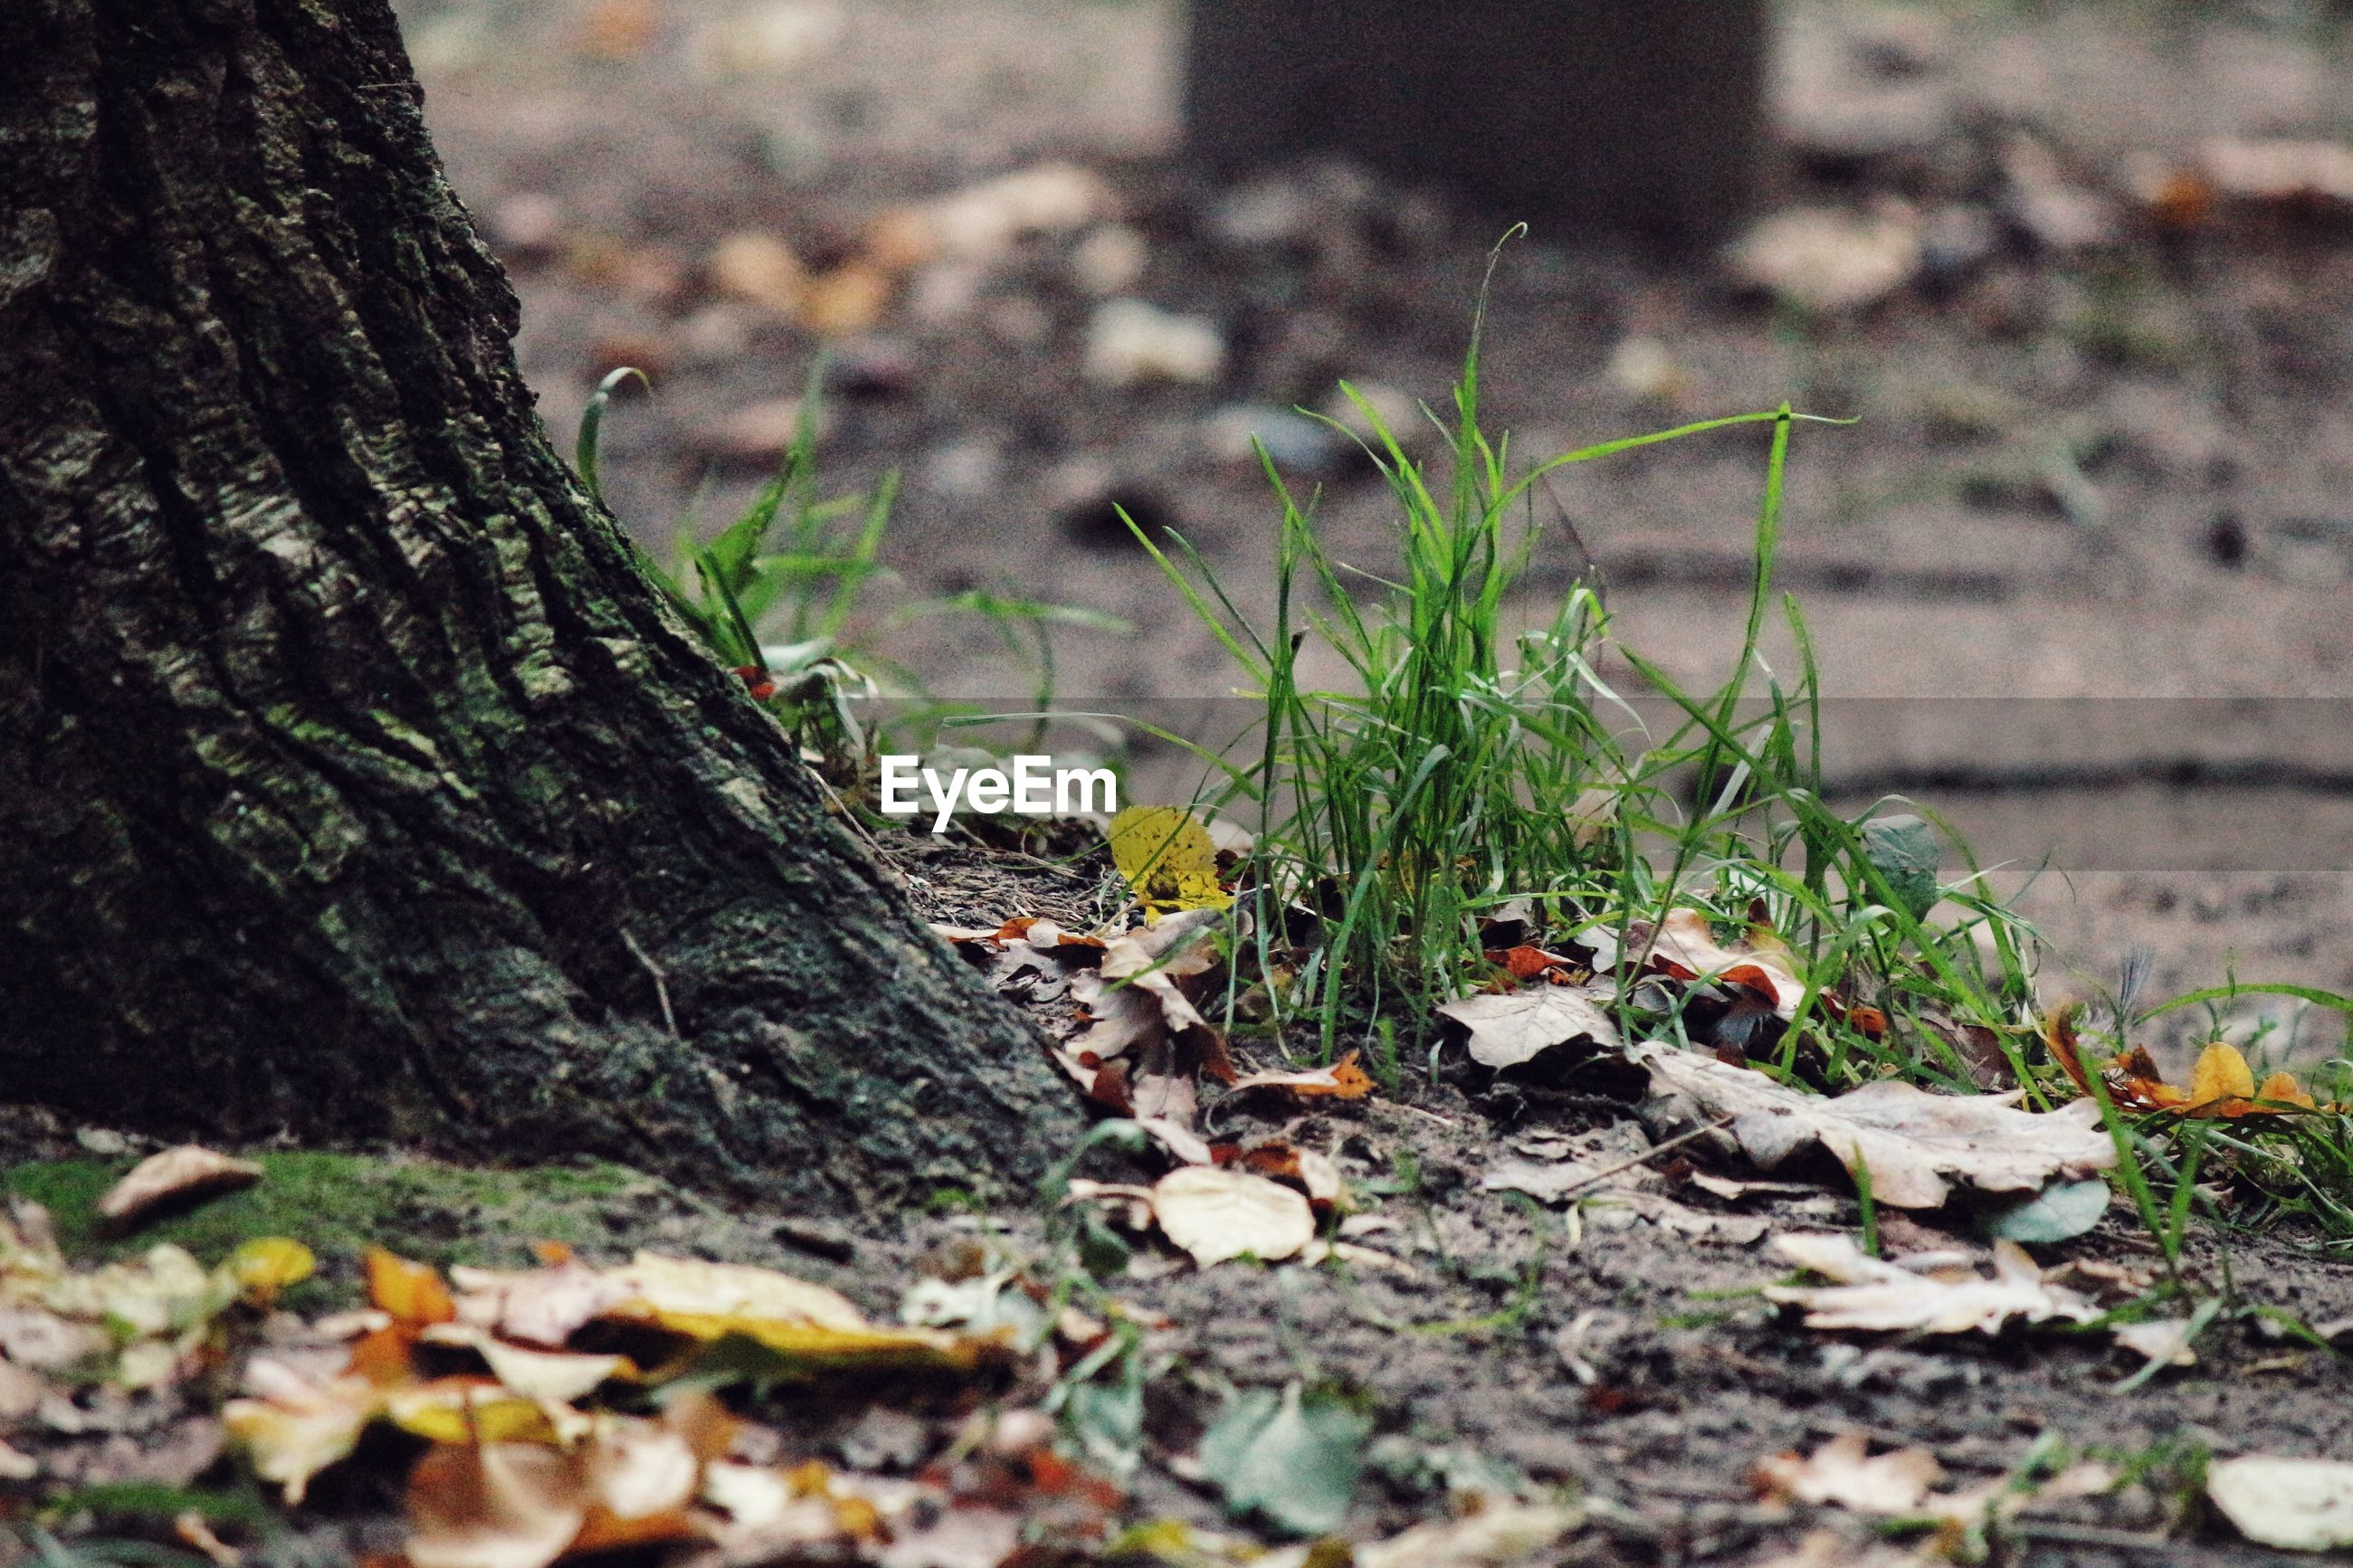 selective focus, tree trunk, moss, growth, surface level, nature, plant, outdoors, tranquility, non-urban scene, beauty in nature, green color, growing, scenics, tranquil scene, dirty